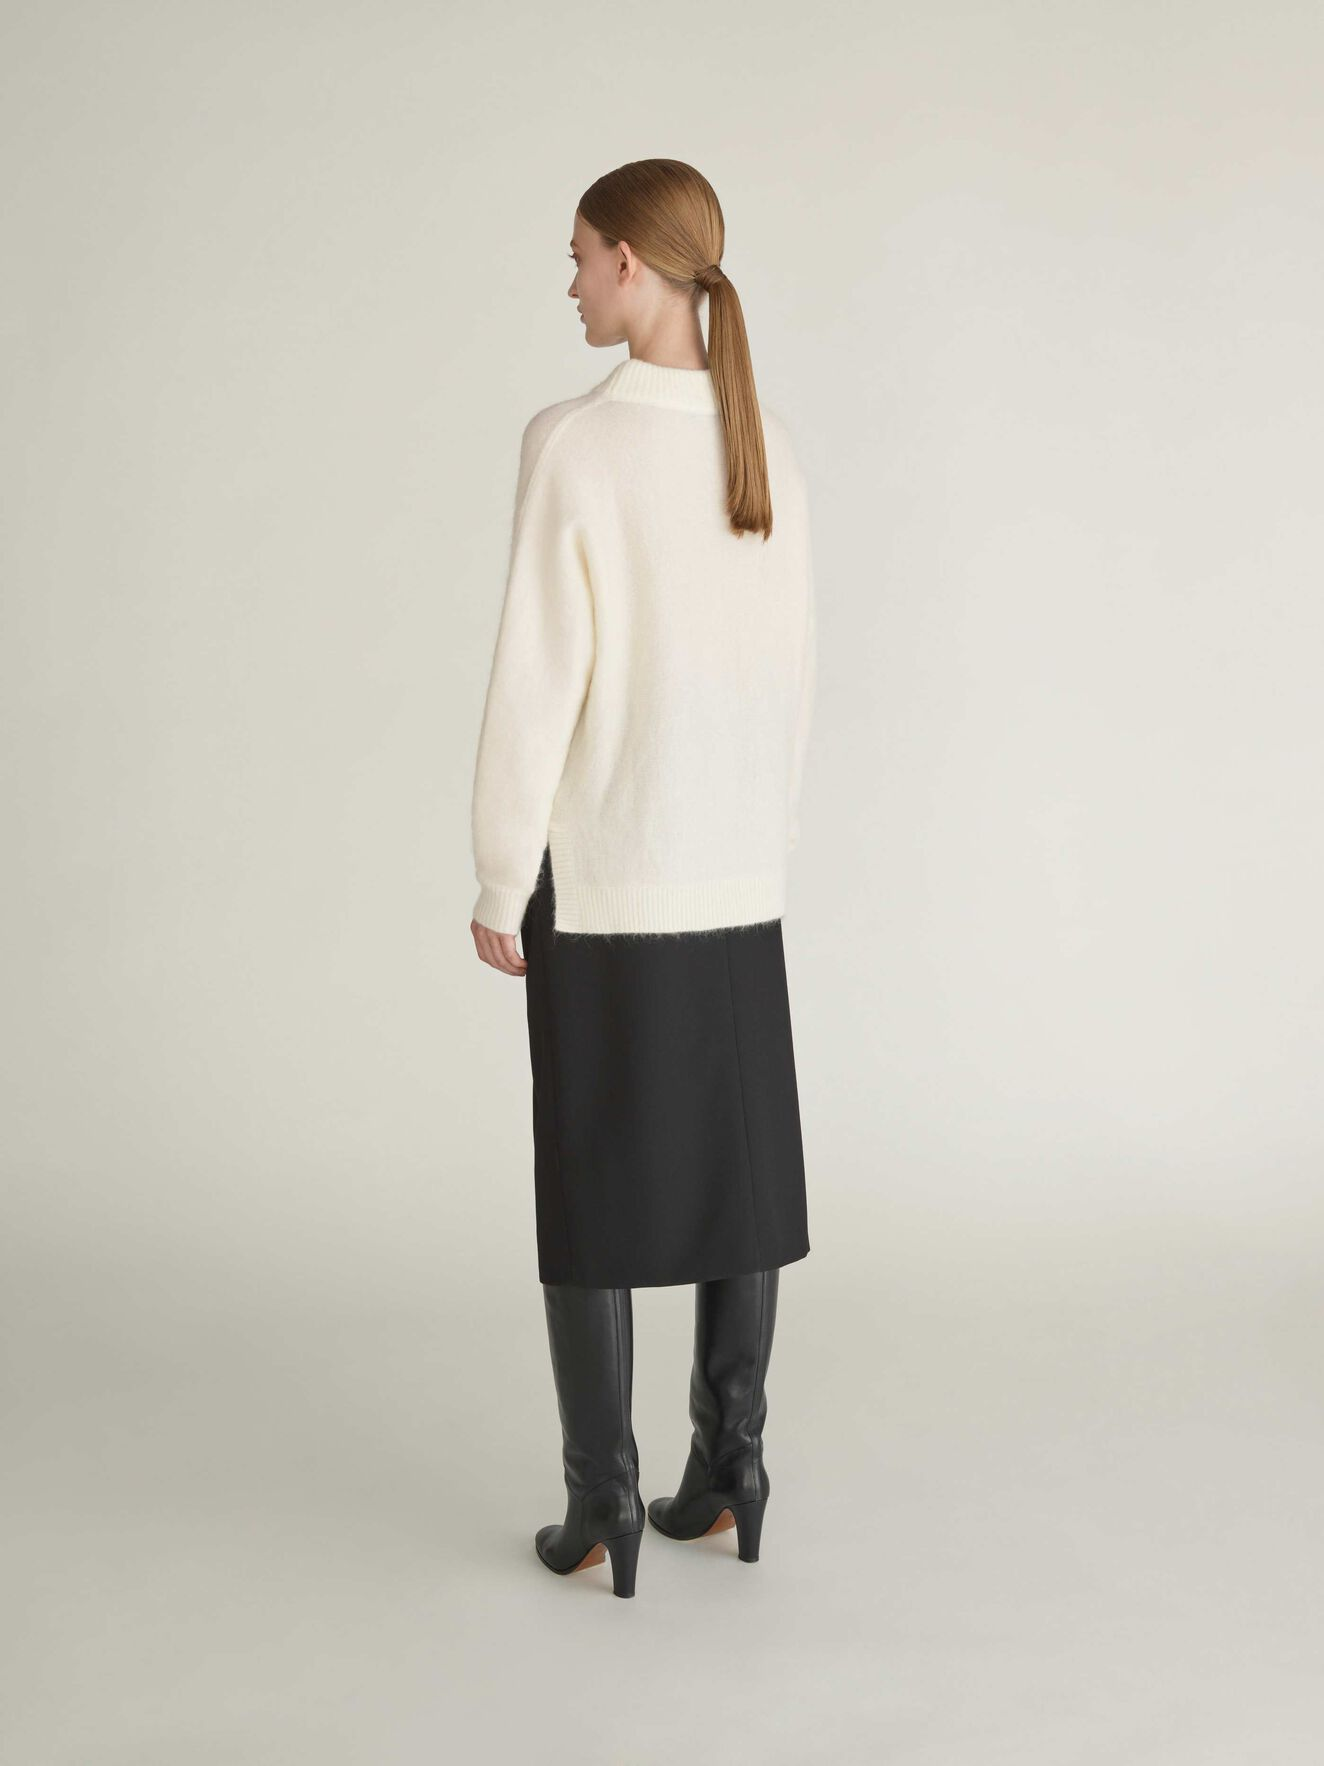 Gwyllen Pullover in Bright White from Tiger of Sweden